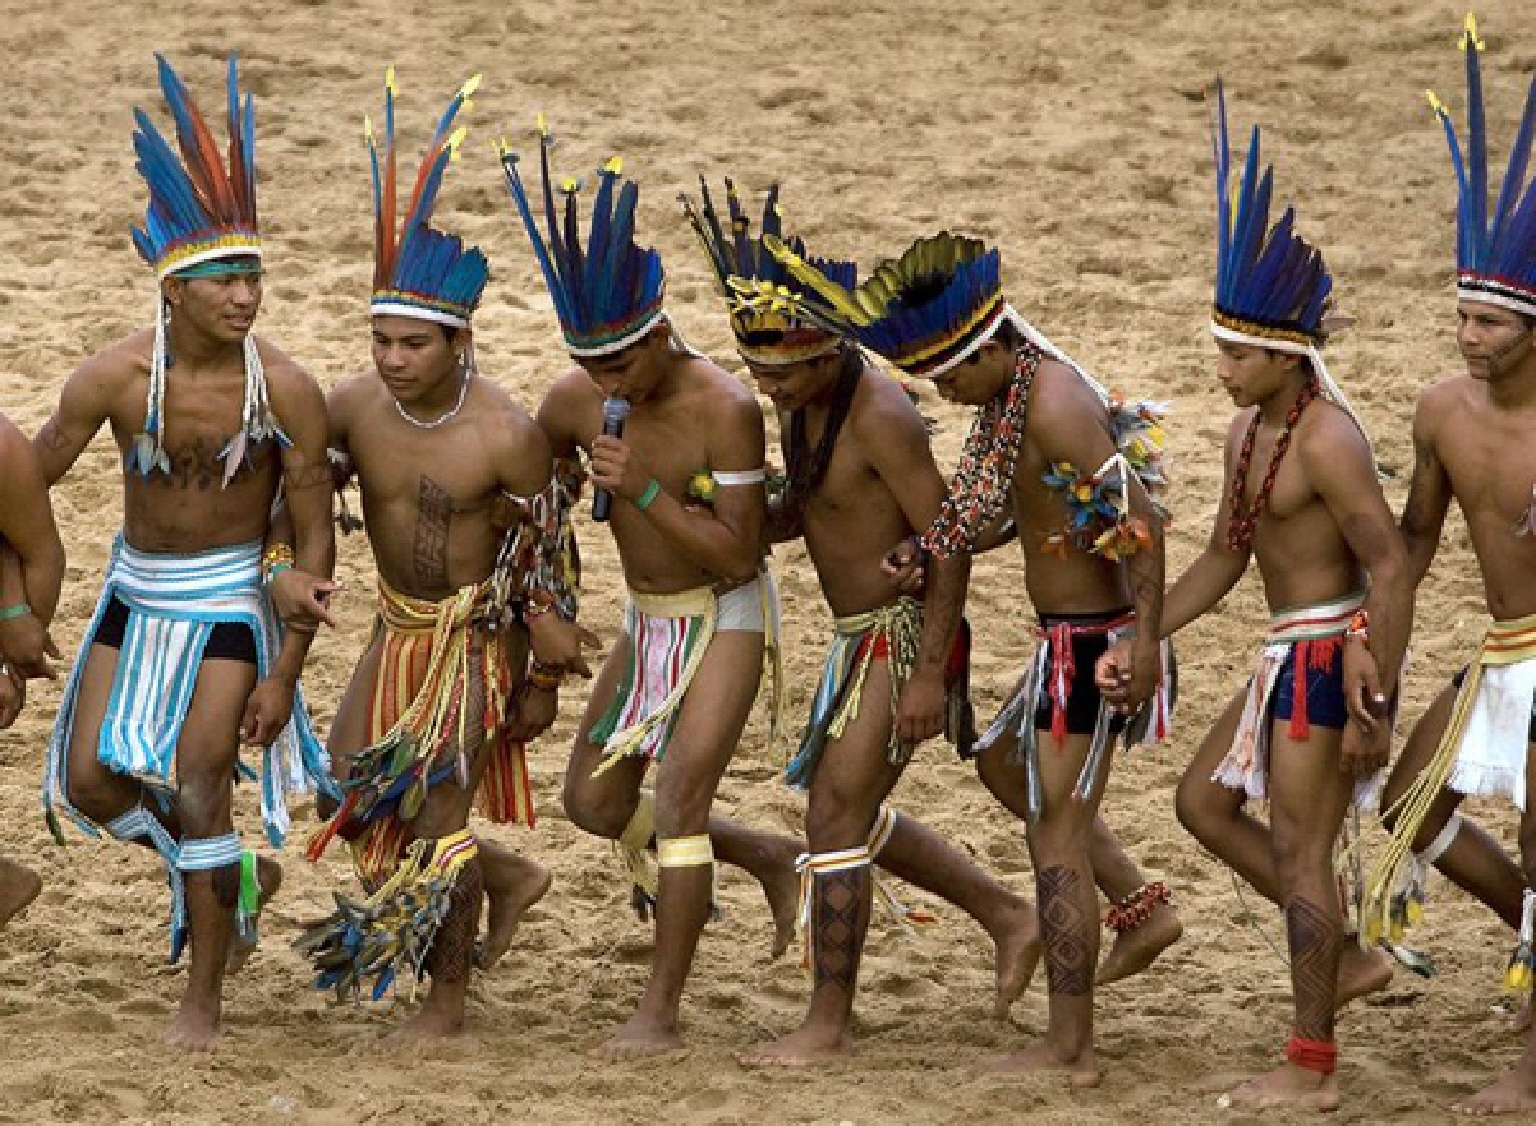 Download this Indigenous People picture